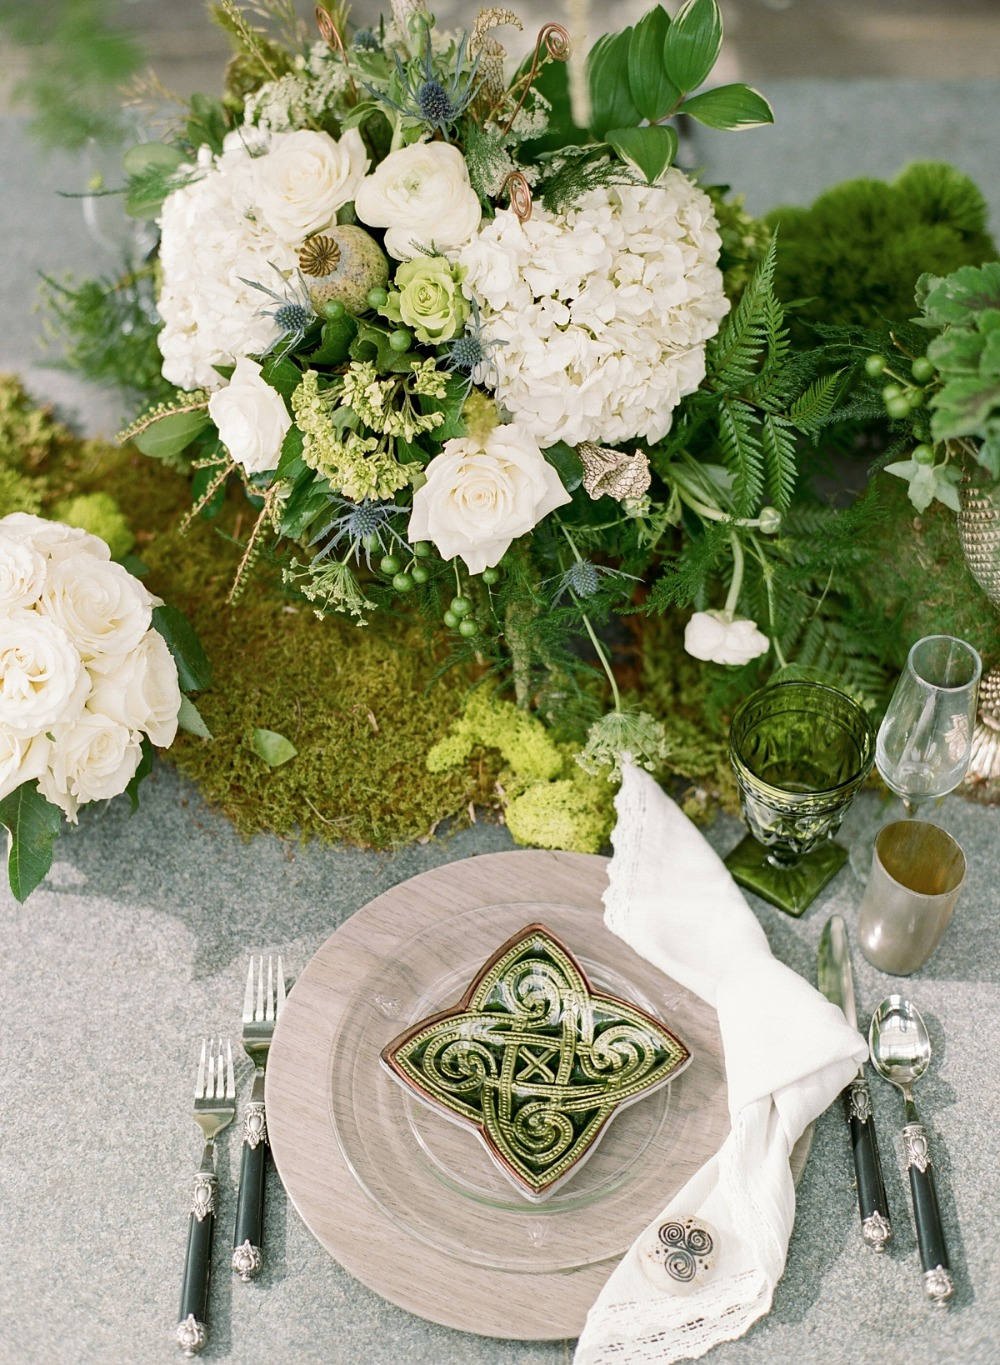 Celtic table decor